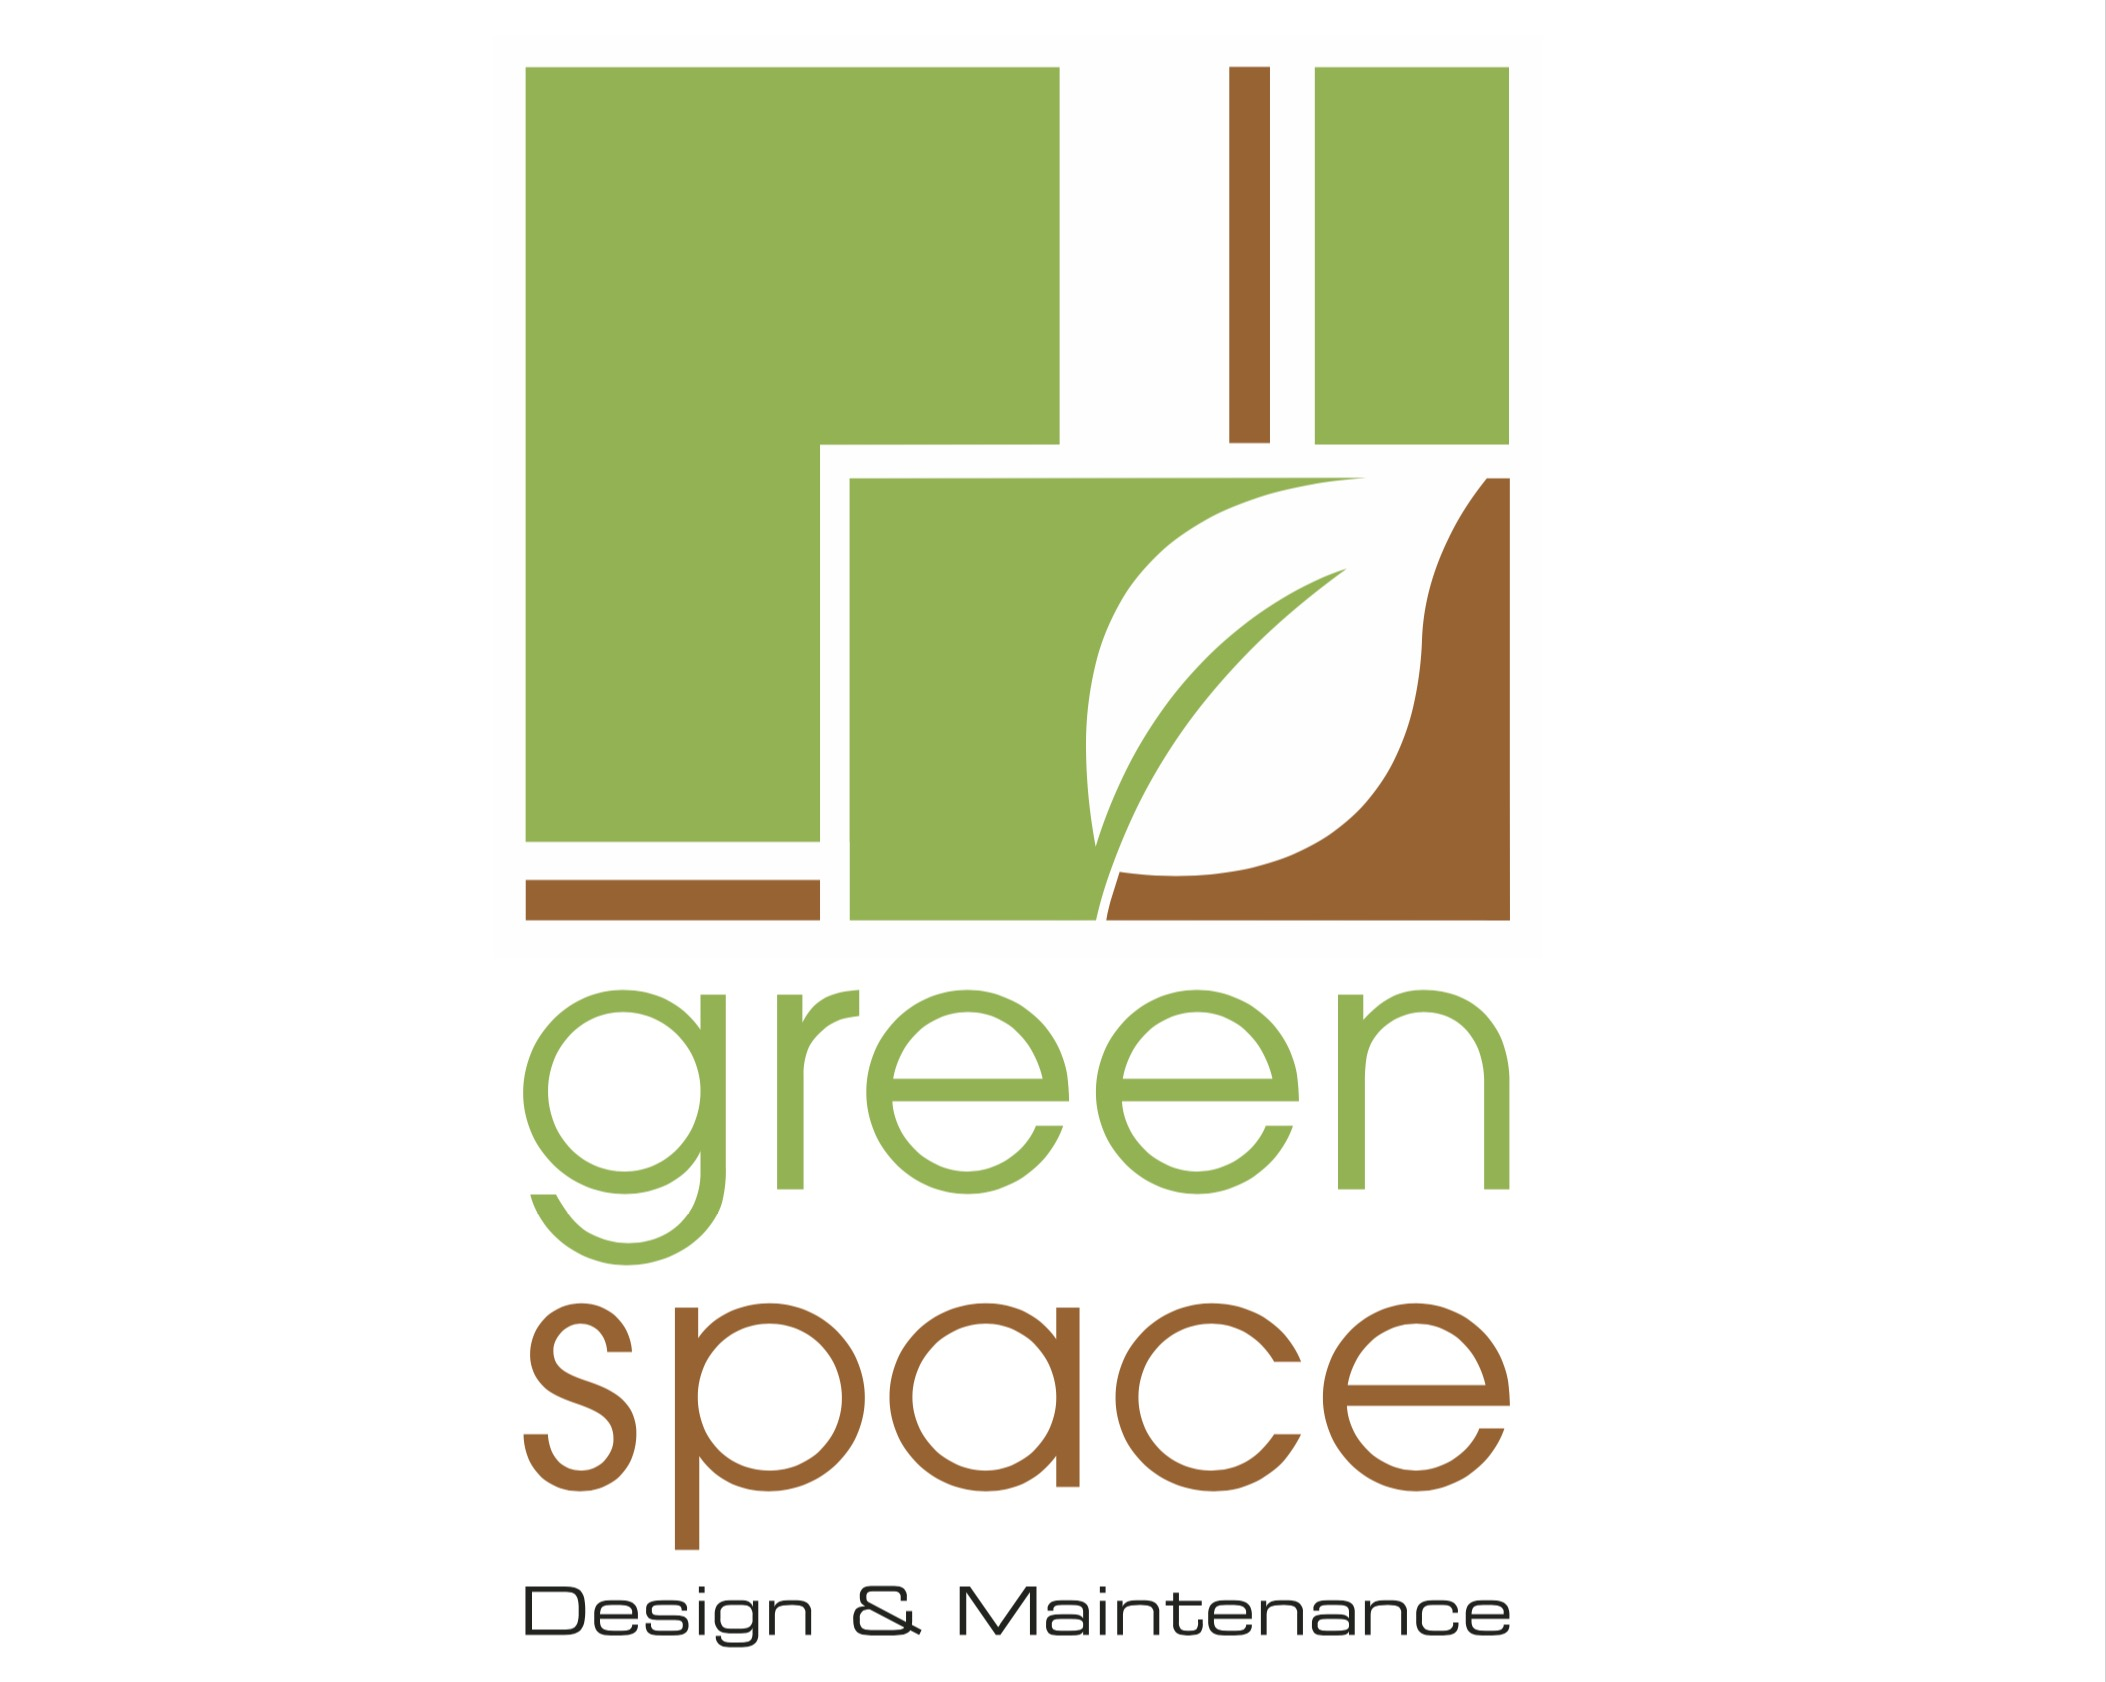 Green Space Landscaping Maintenance logo